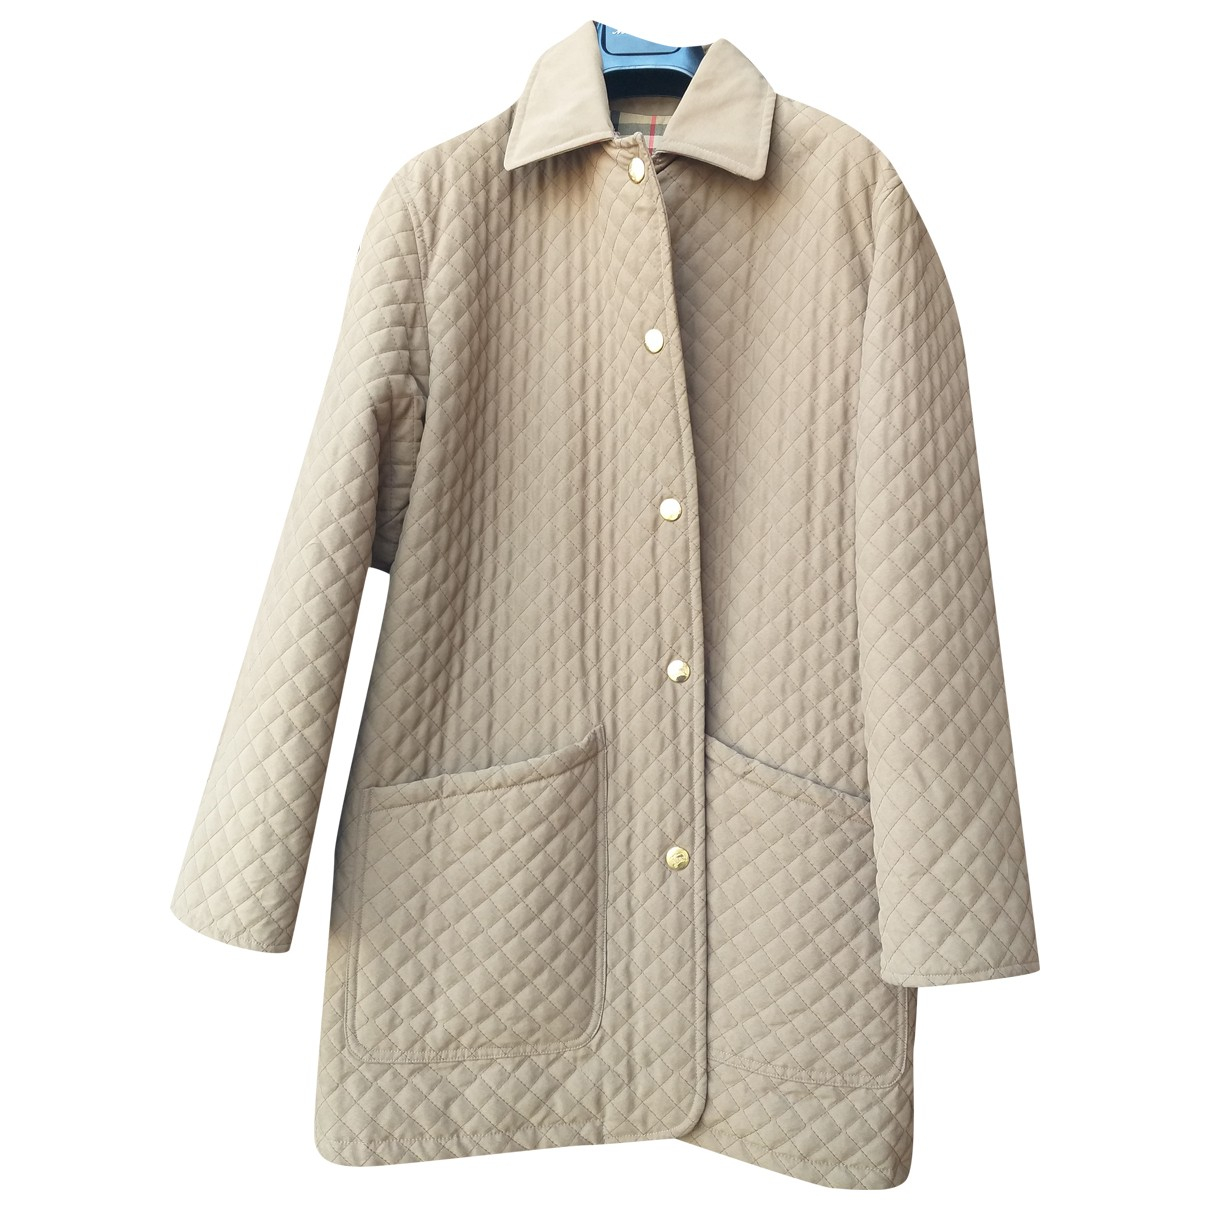 Burberry N Green Cotton jacket for Women 38 FR